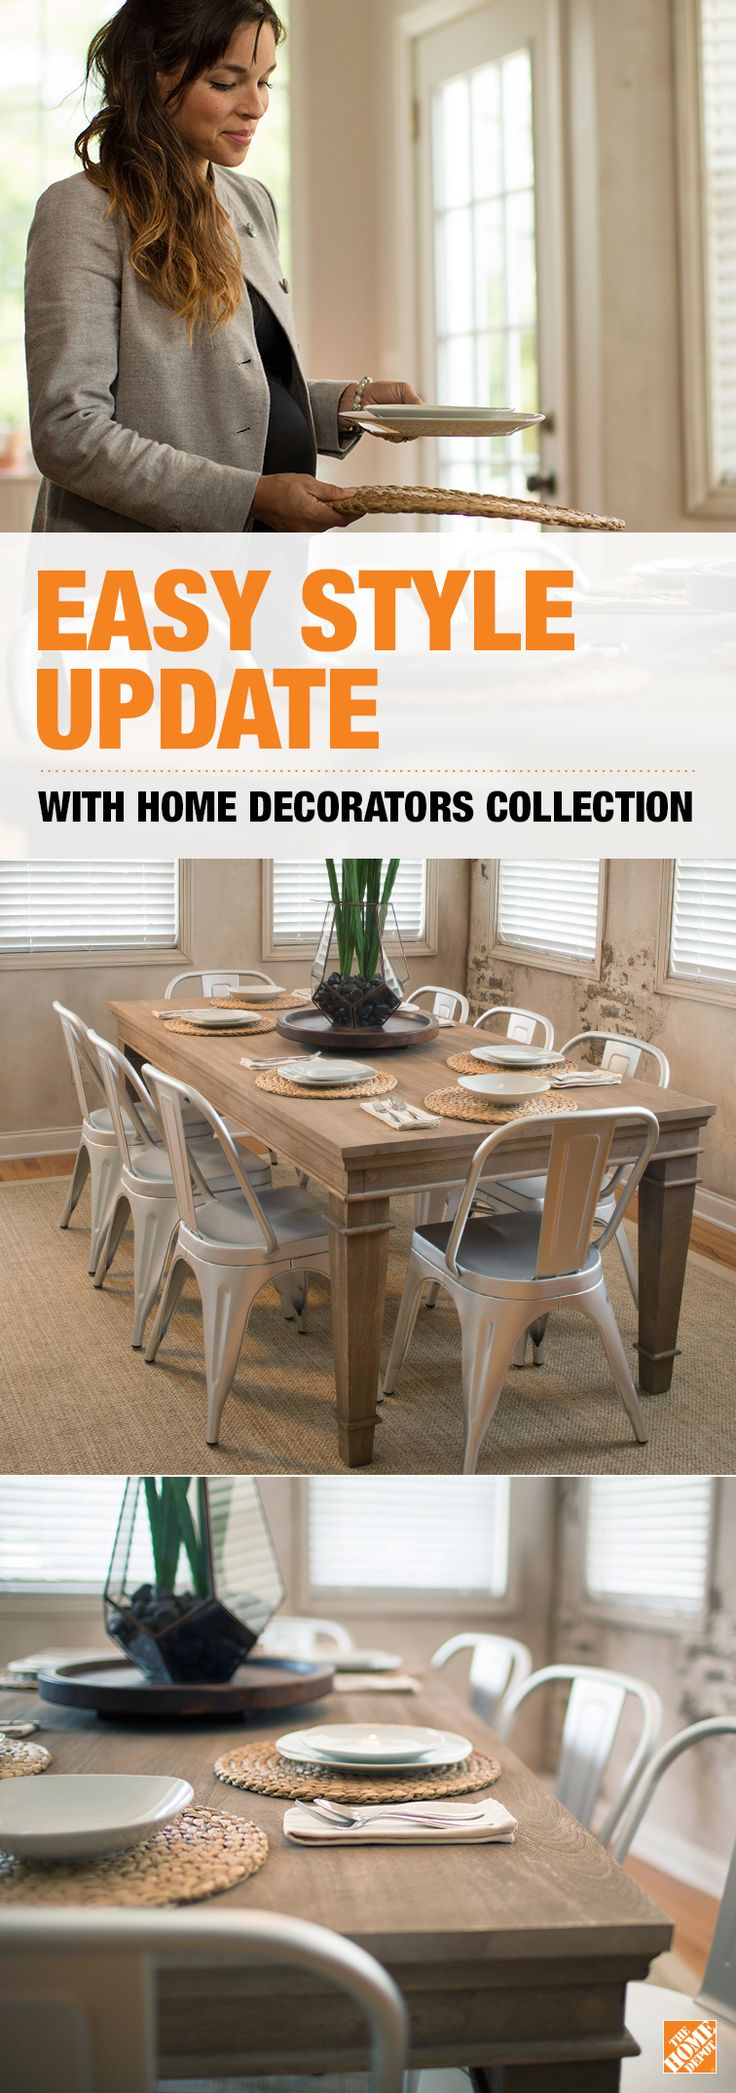 Home decorators collection revisited southern hospitality - See How This Rustic Highland Dining Table From Home Depot S Home Decorators Collection Anchored Blogger Anna